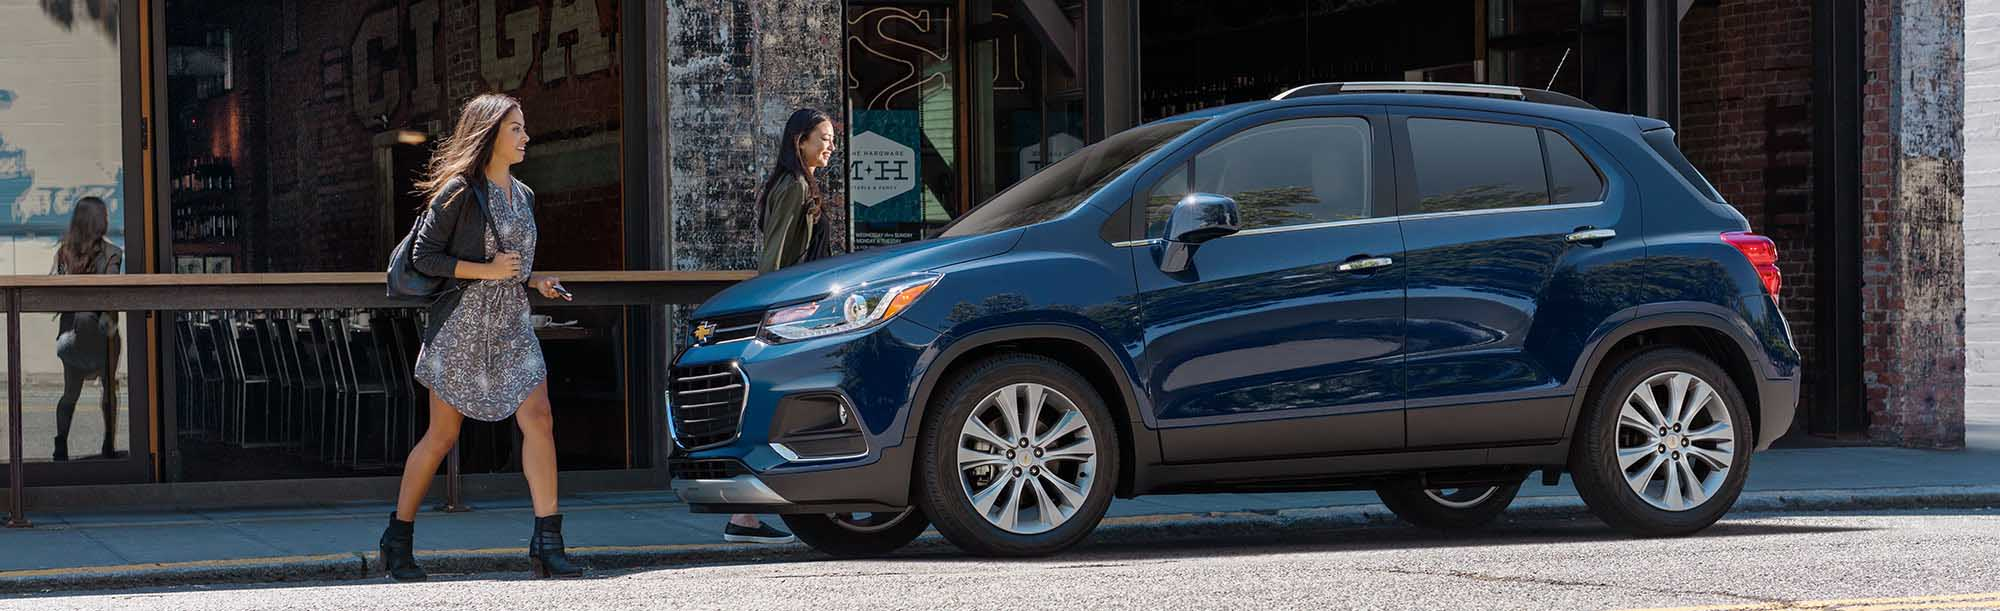 2020 Chevrolet Trax On Road